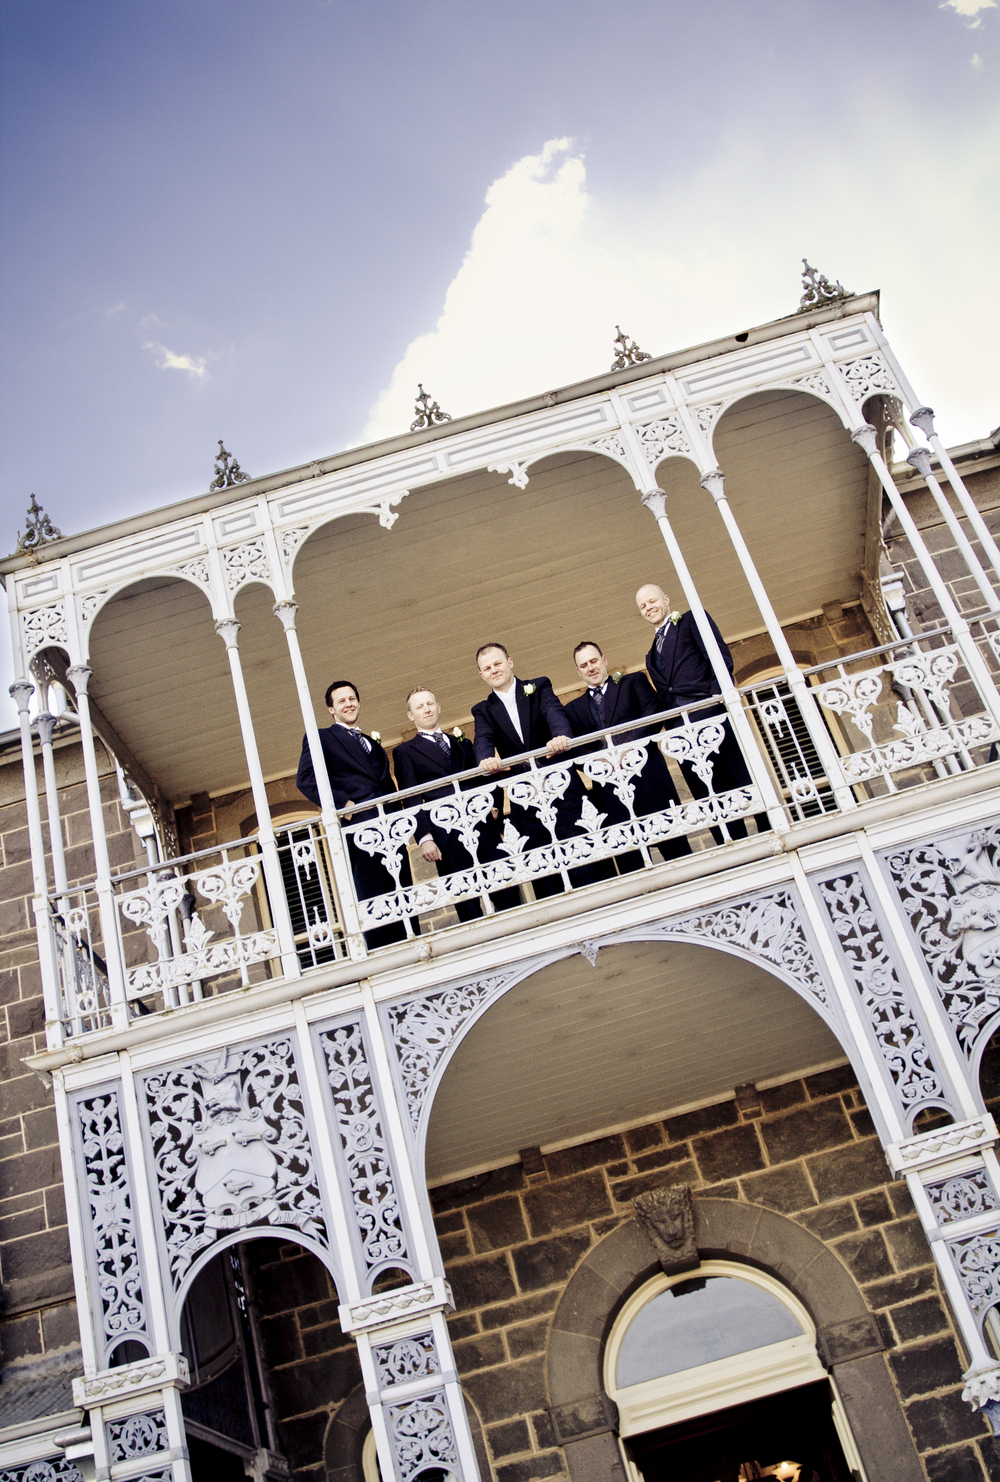 3 Groomsmen on balcony.jpg